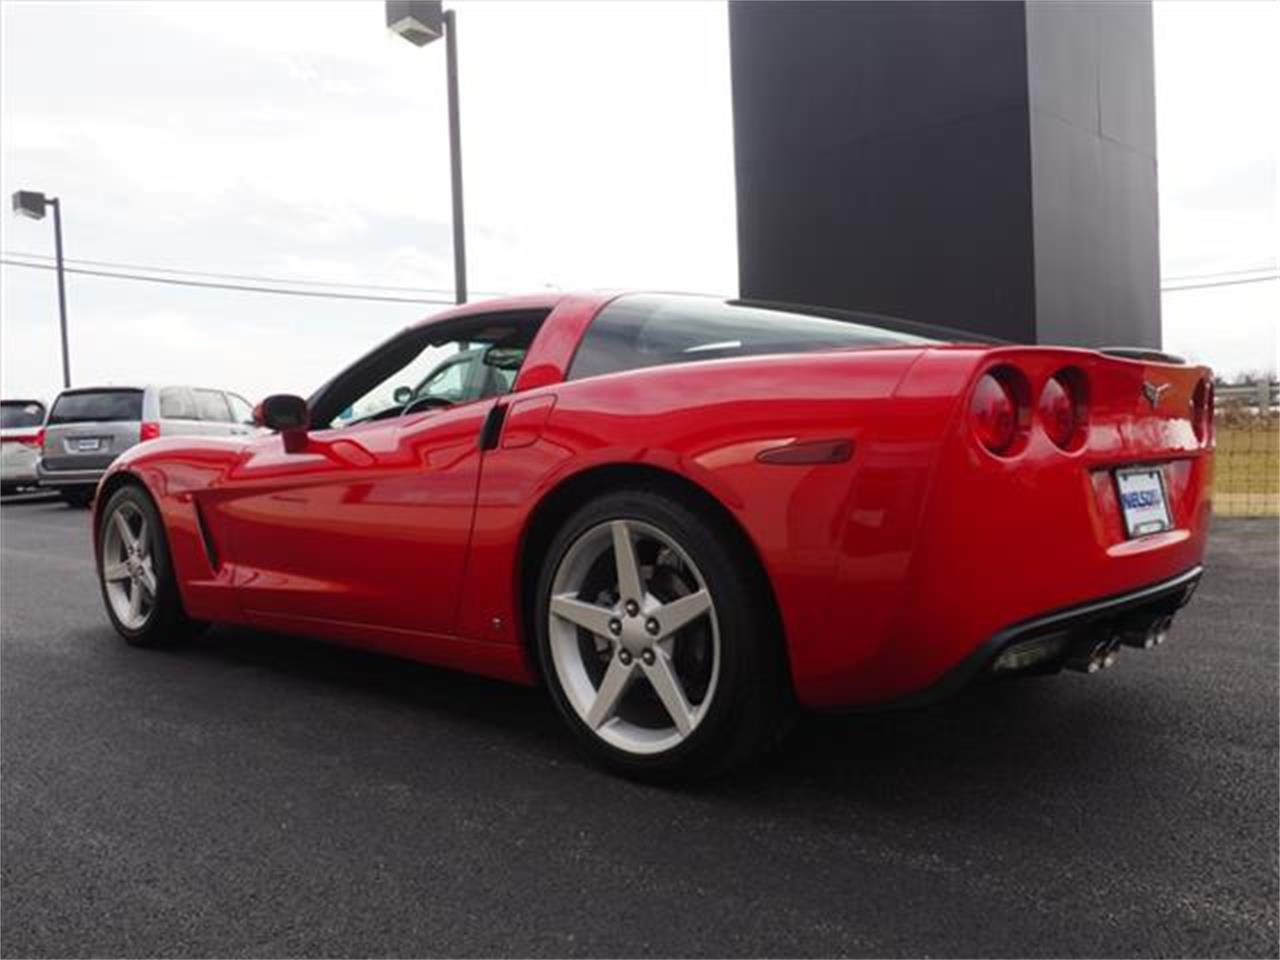 Large Picture of 2006 Chevrolet Corvette located in Ohio - $23,999.00 Offered by Nelson Automotive, Ltd. - MB5M